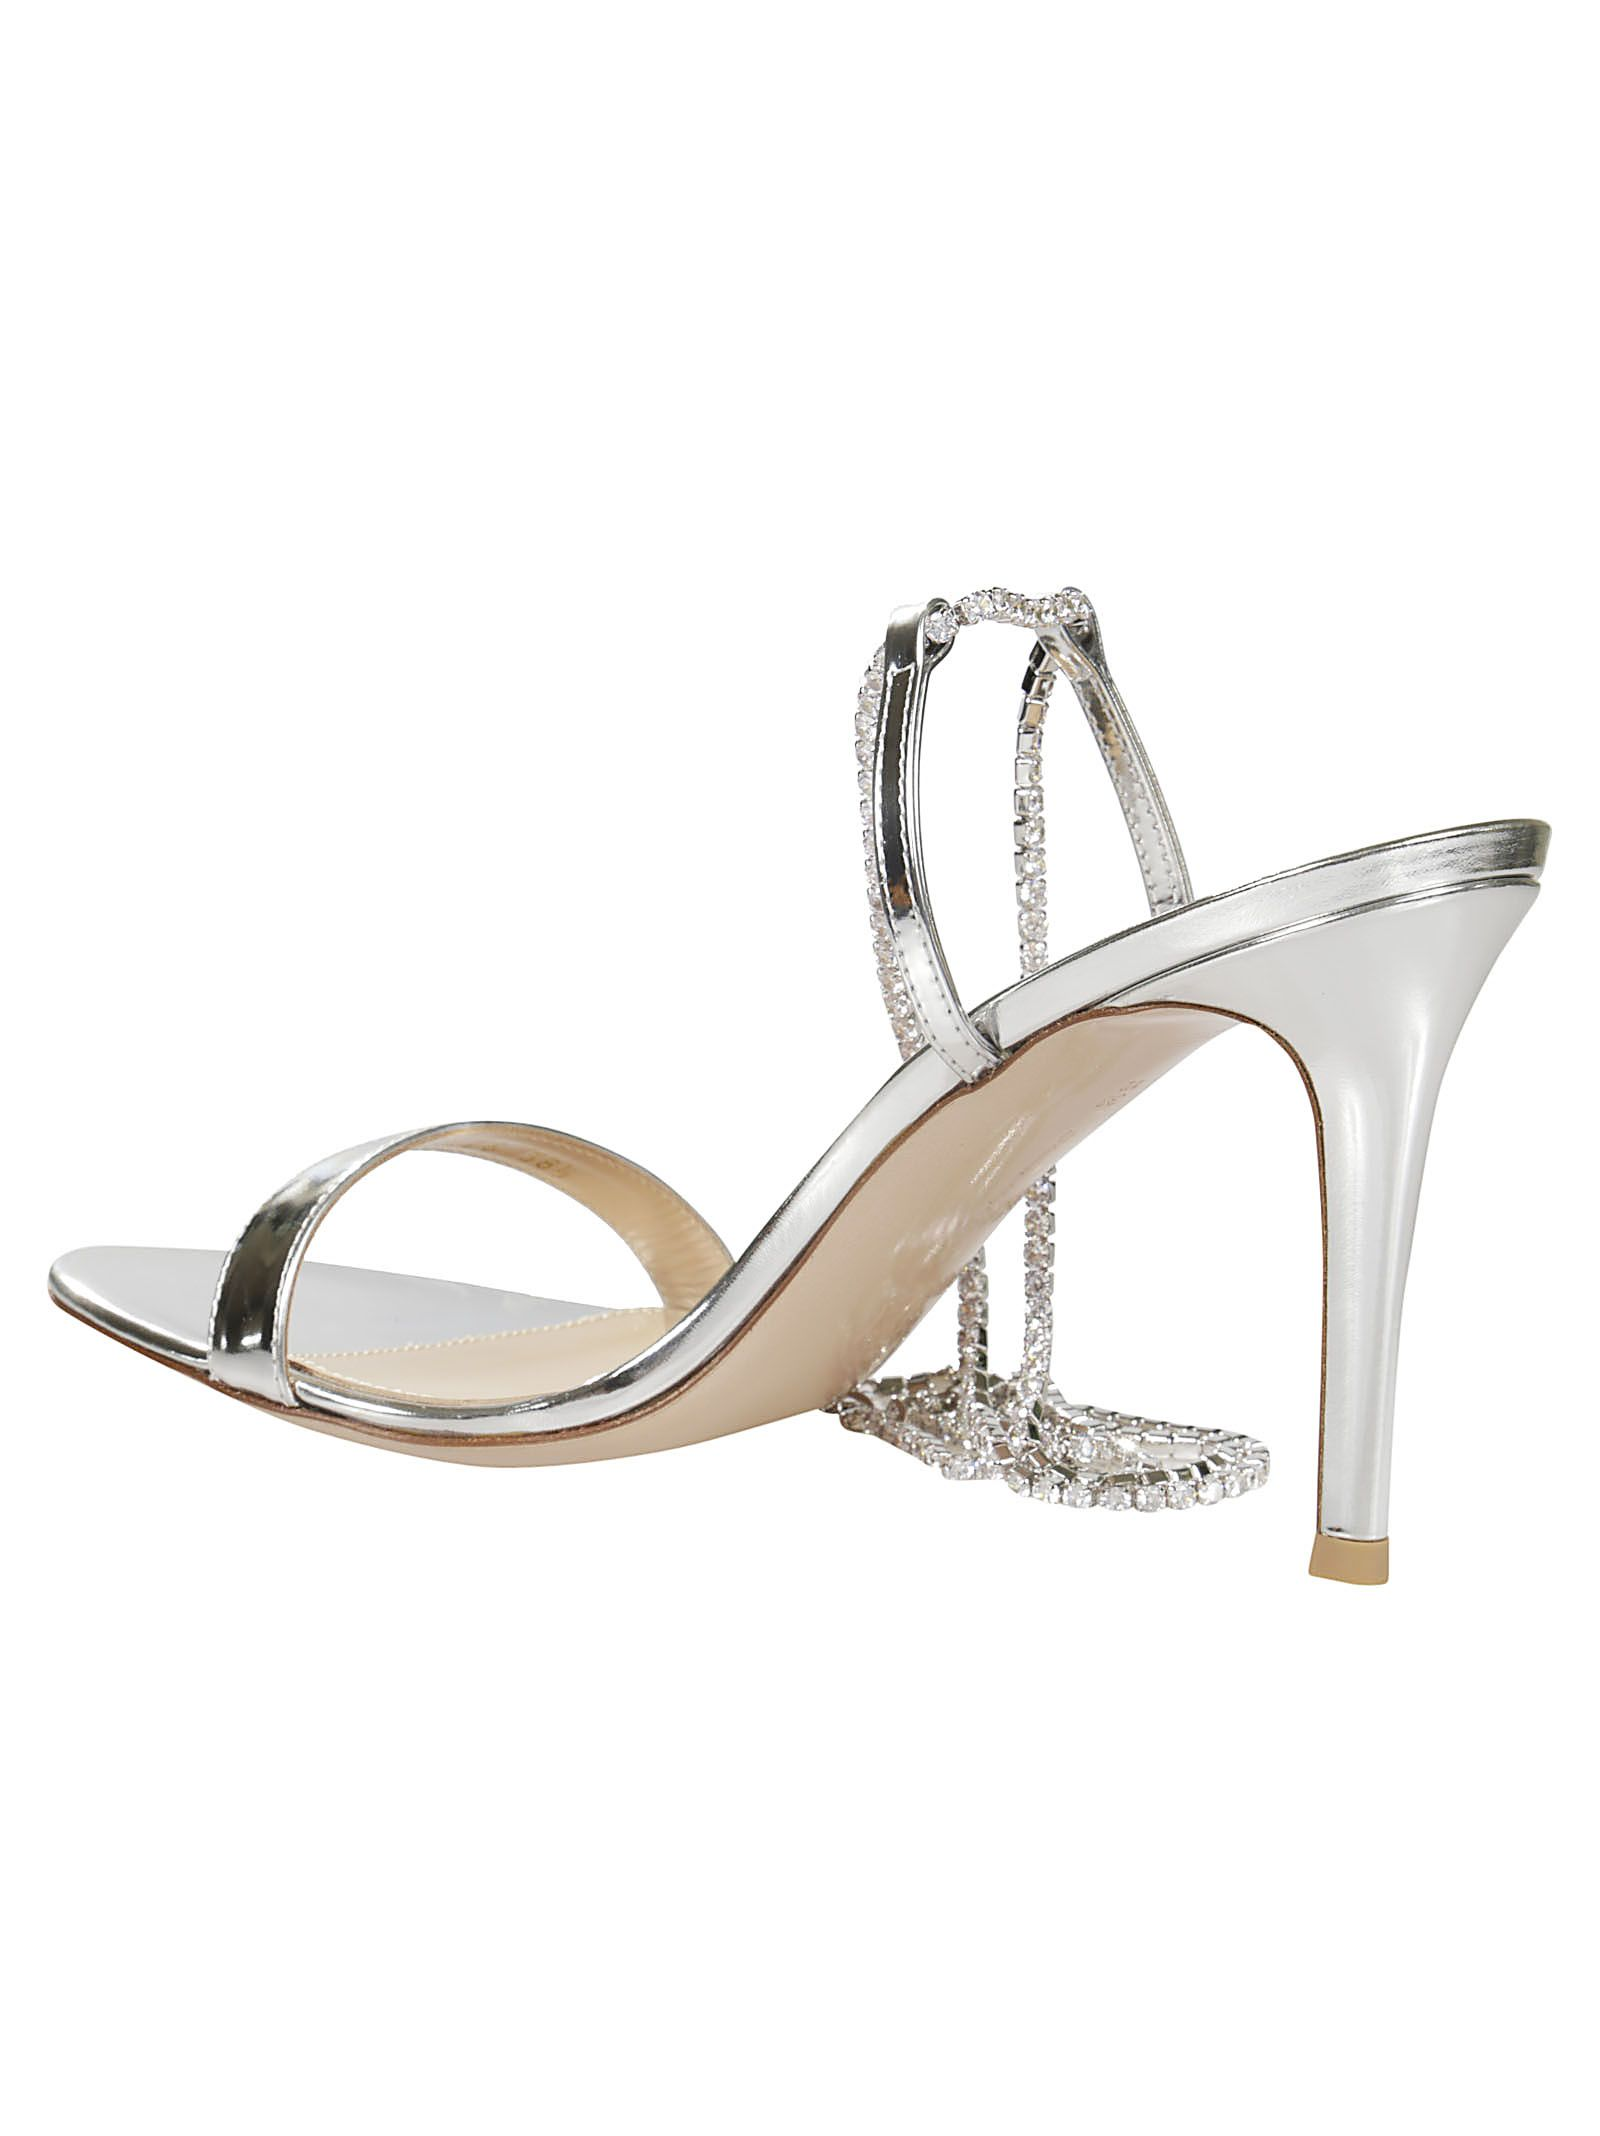 05a064396 Gianvito Rossi Gianvito Rossi Tennis Crystal Sandals - Silver ...